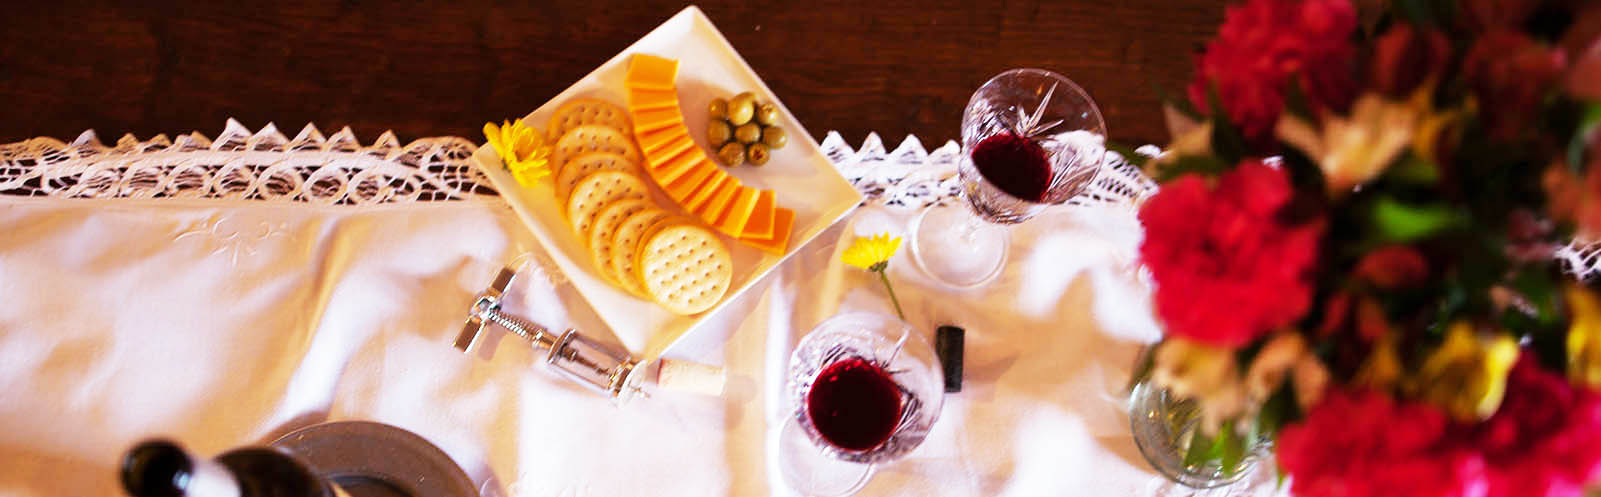 Perfect for Romantic Culinary & Vintner <strong>Excursions</strong>